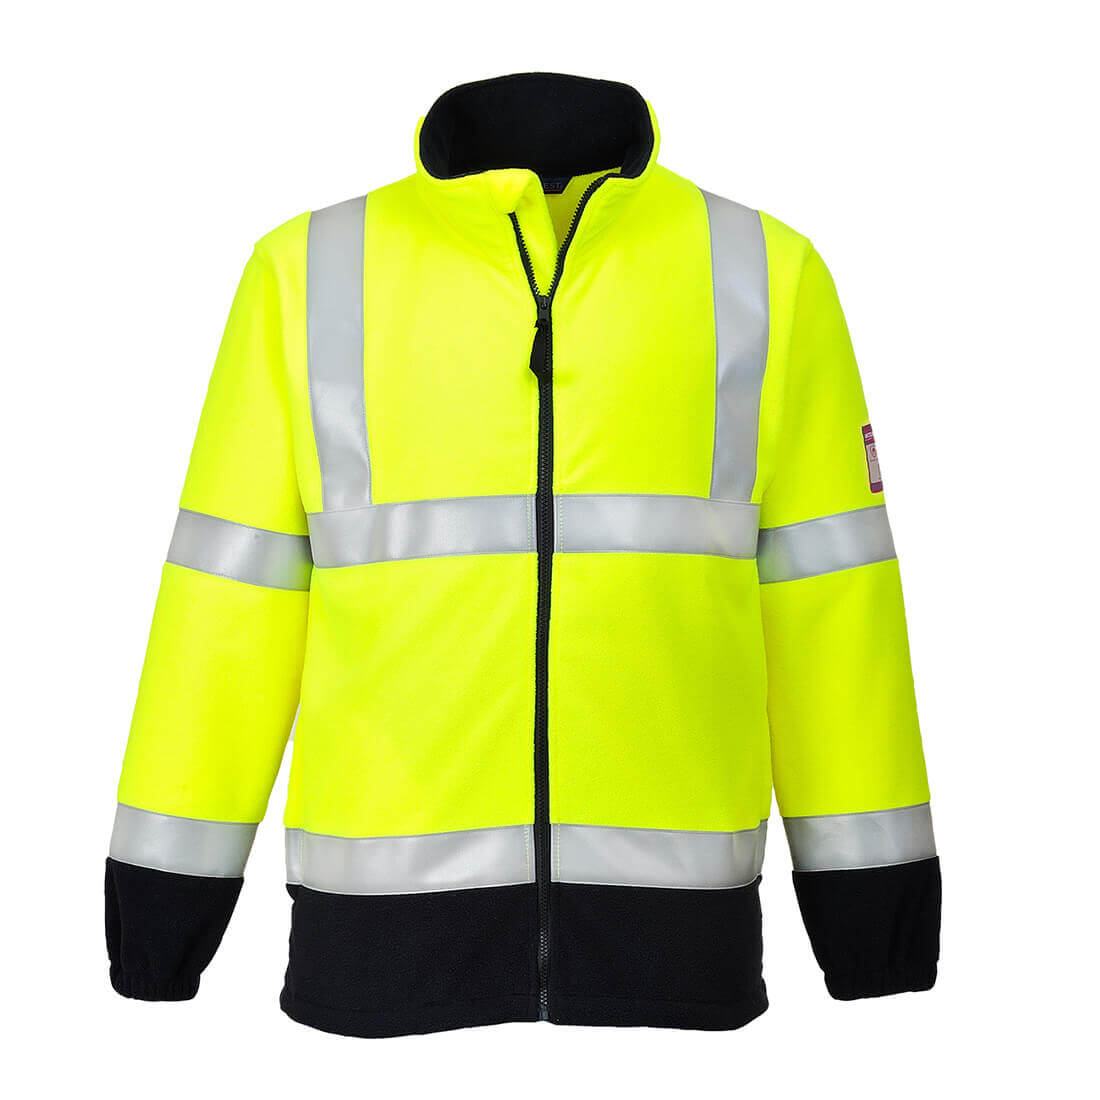 Image of Modaflame Flame Resistant Hi-Vis Fleece Yellow 3XL